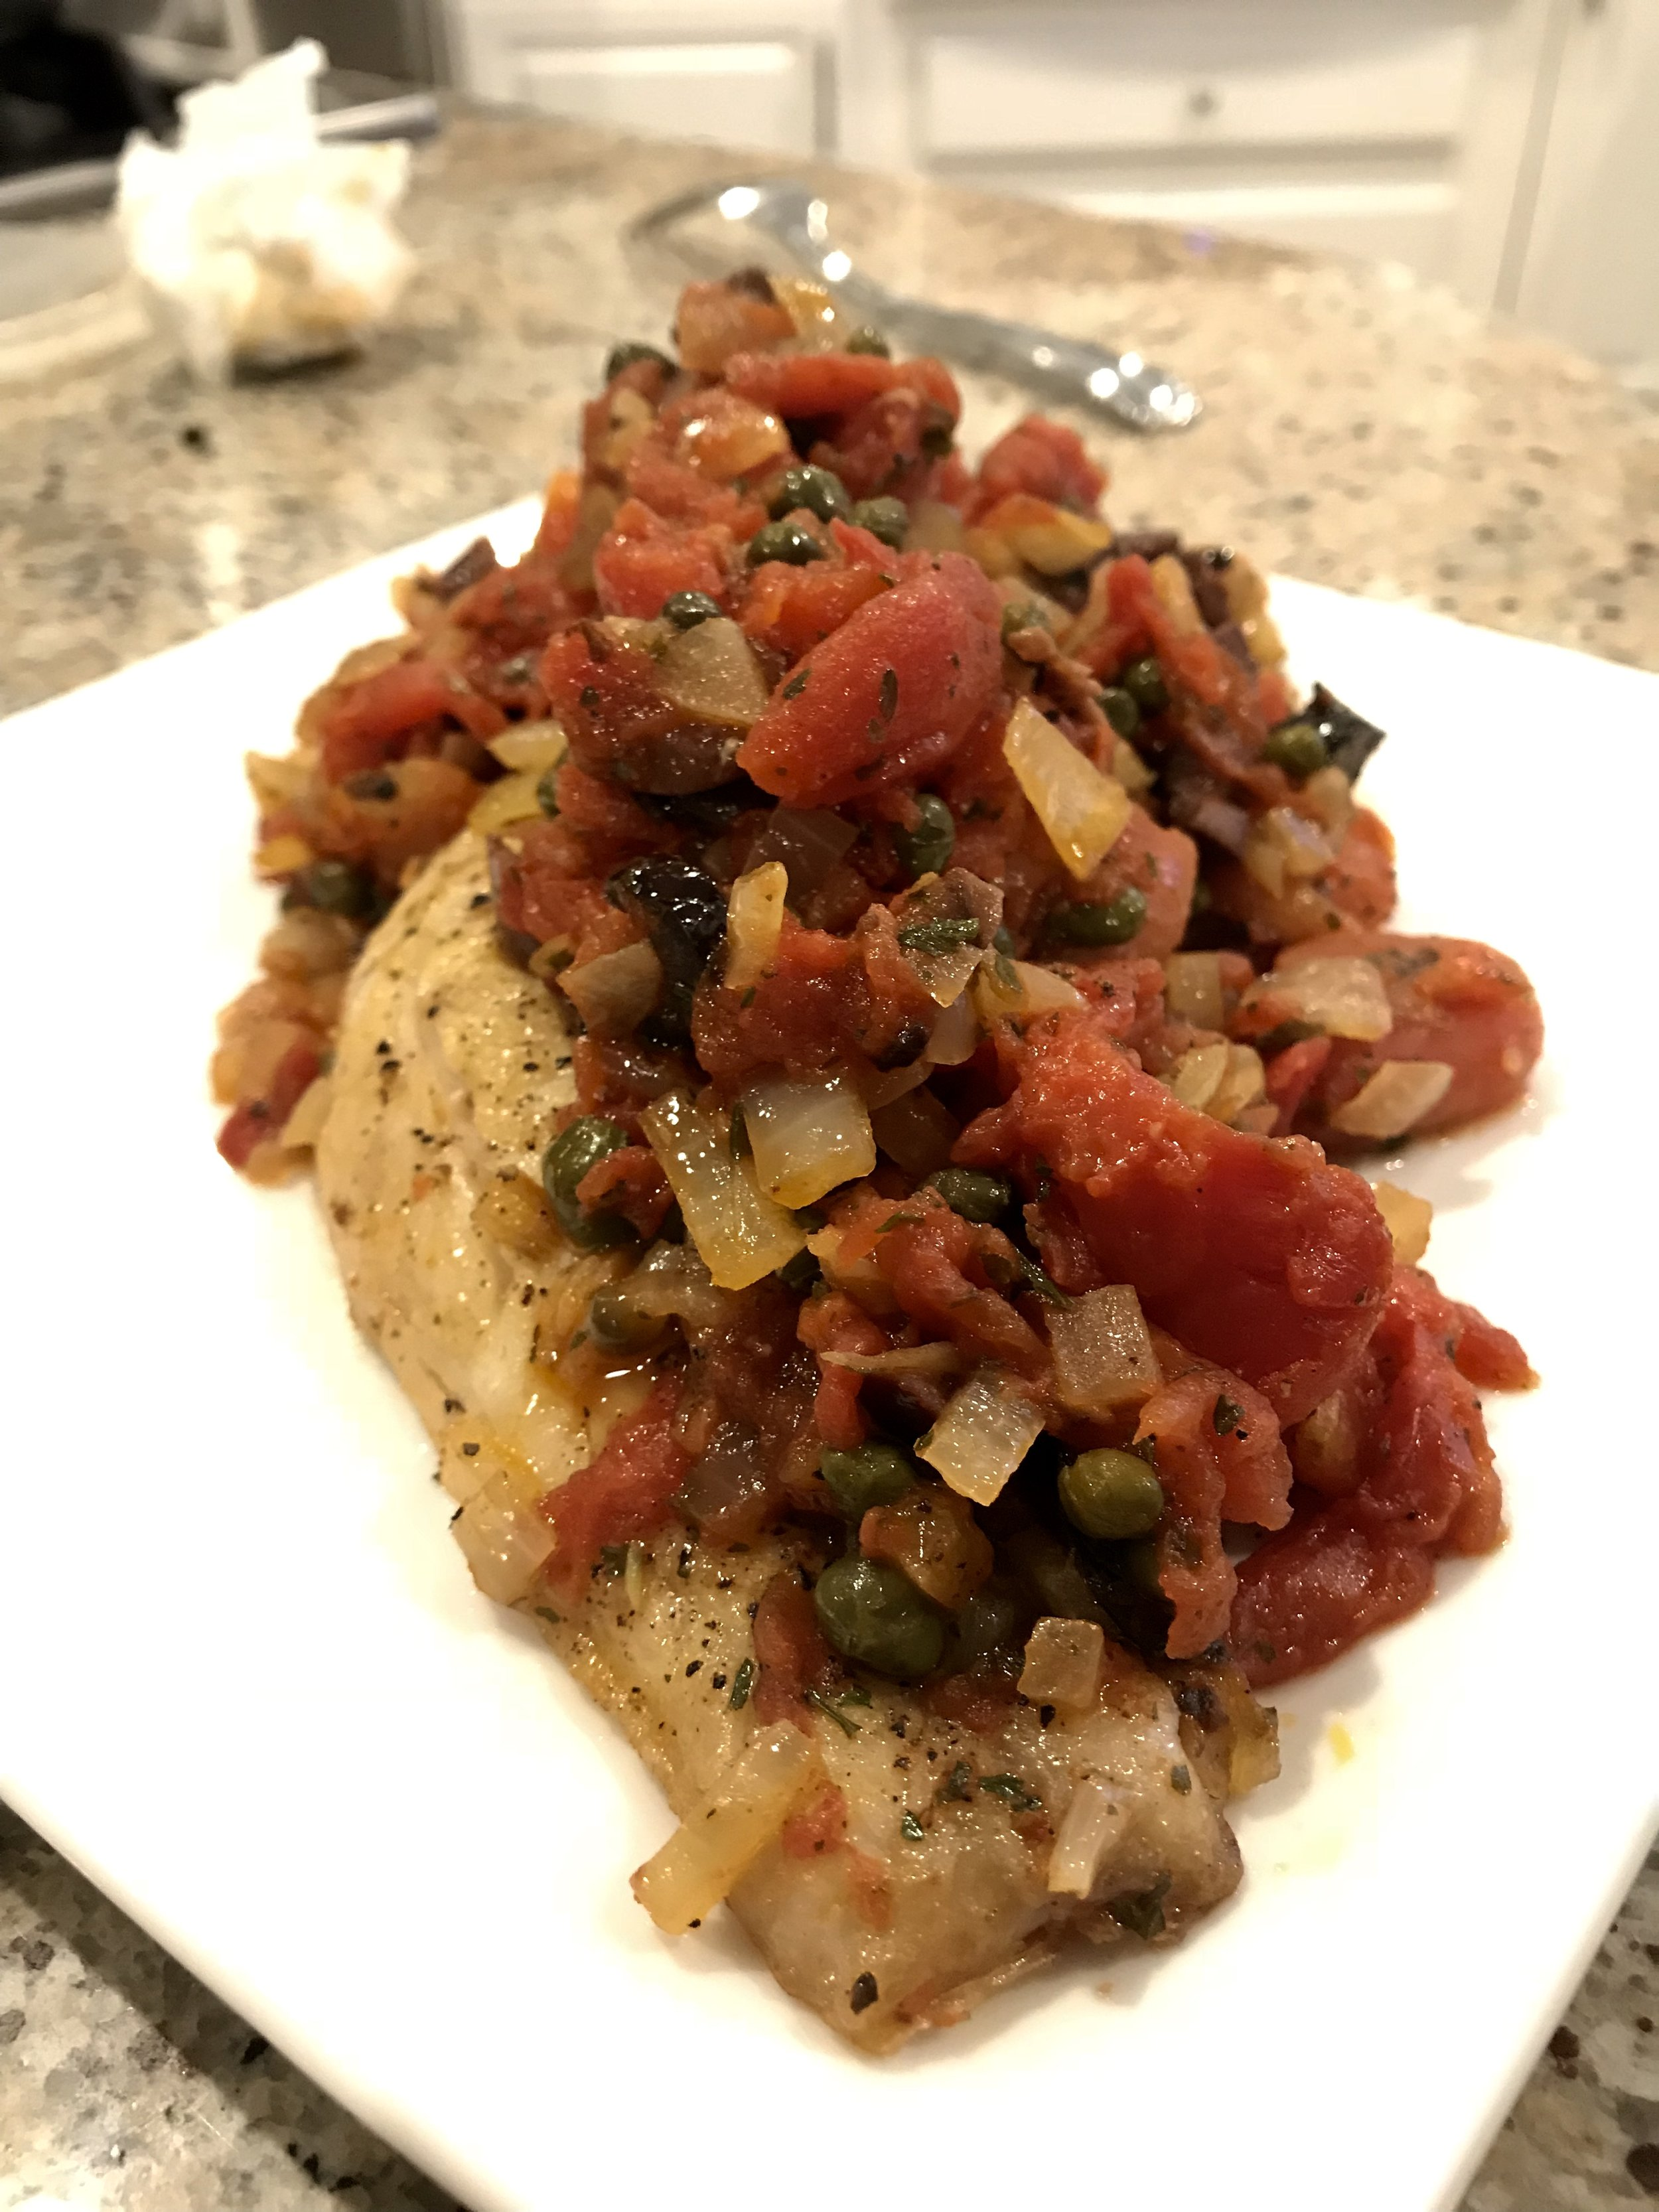 - 2 Red Snapper Fillets, skin on1 Yellow onion, diced1 28oz Can of Plum Tomatoes, hand crushed1/2 Cup Kalamata or Black Olives, chopped1-2 Tbsp Capers (rinsed if they're salted)Fresh Parsley & BasilEVOOS&P